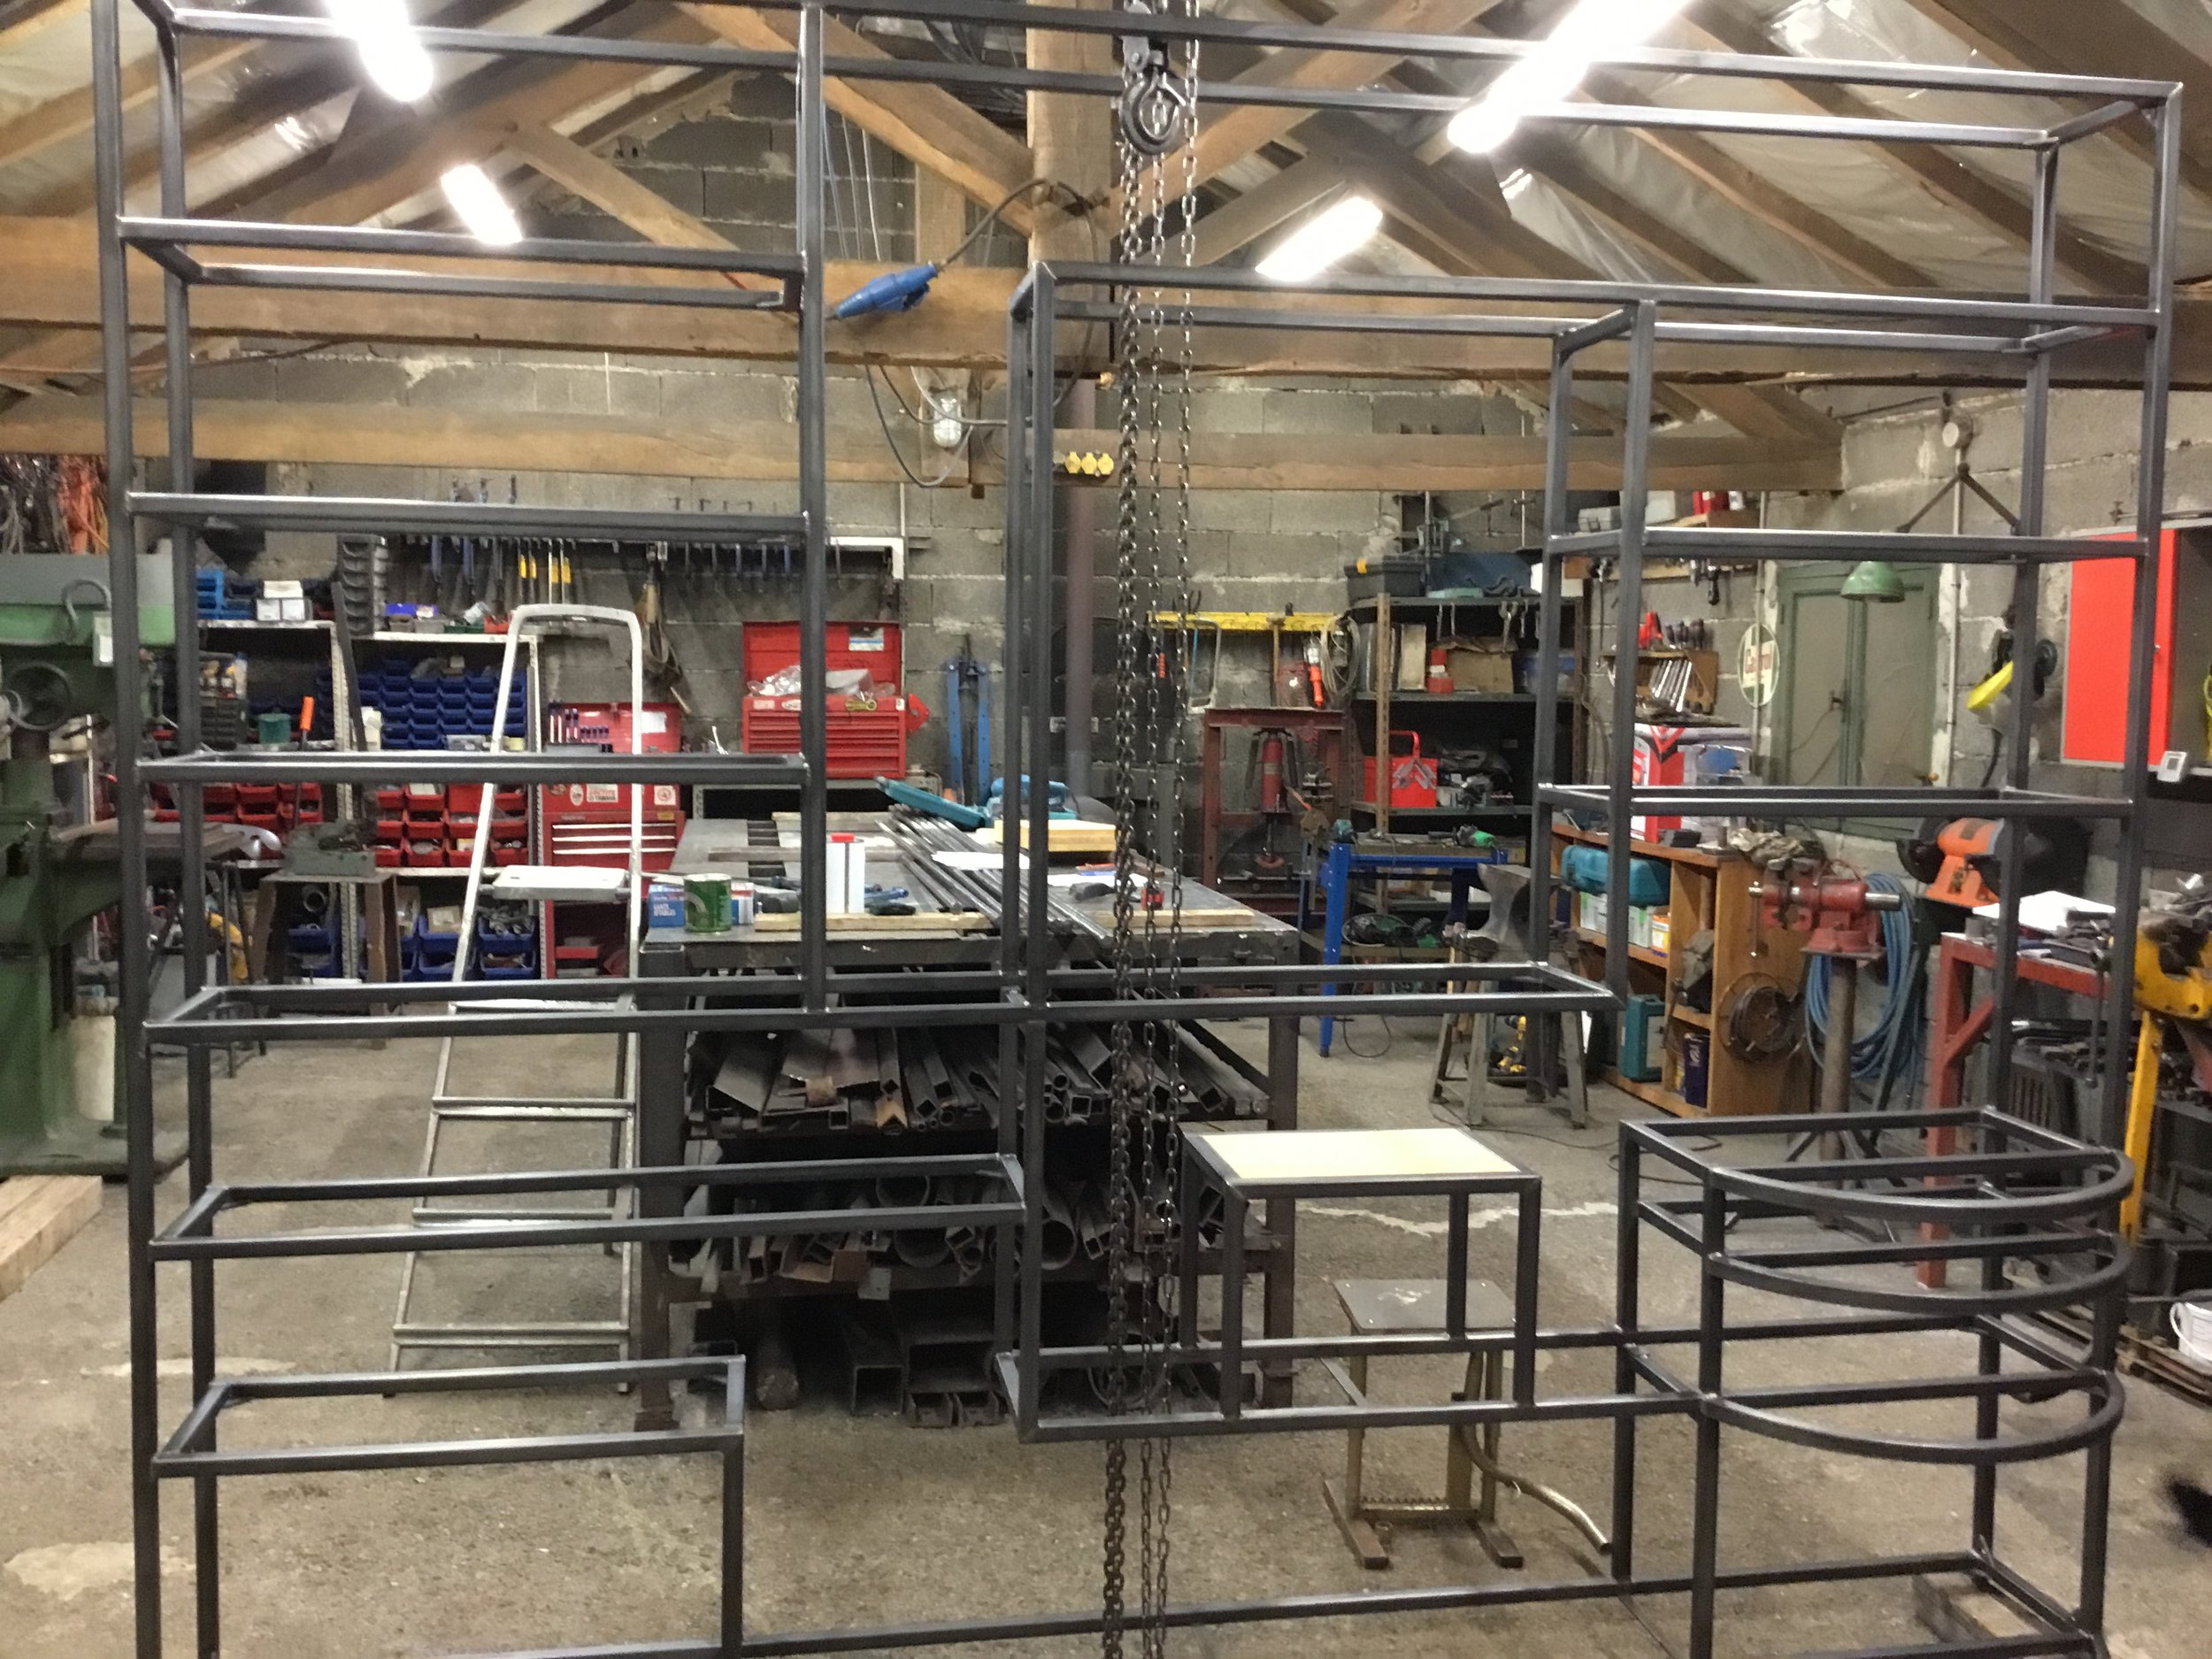 The 'bare bones' frame of the bibliothèque in the workshop. Wooden shelves were made to measure and then inserted into the frame once it was in place.